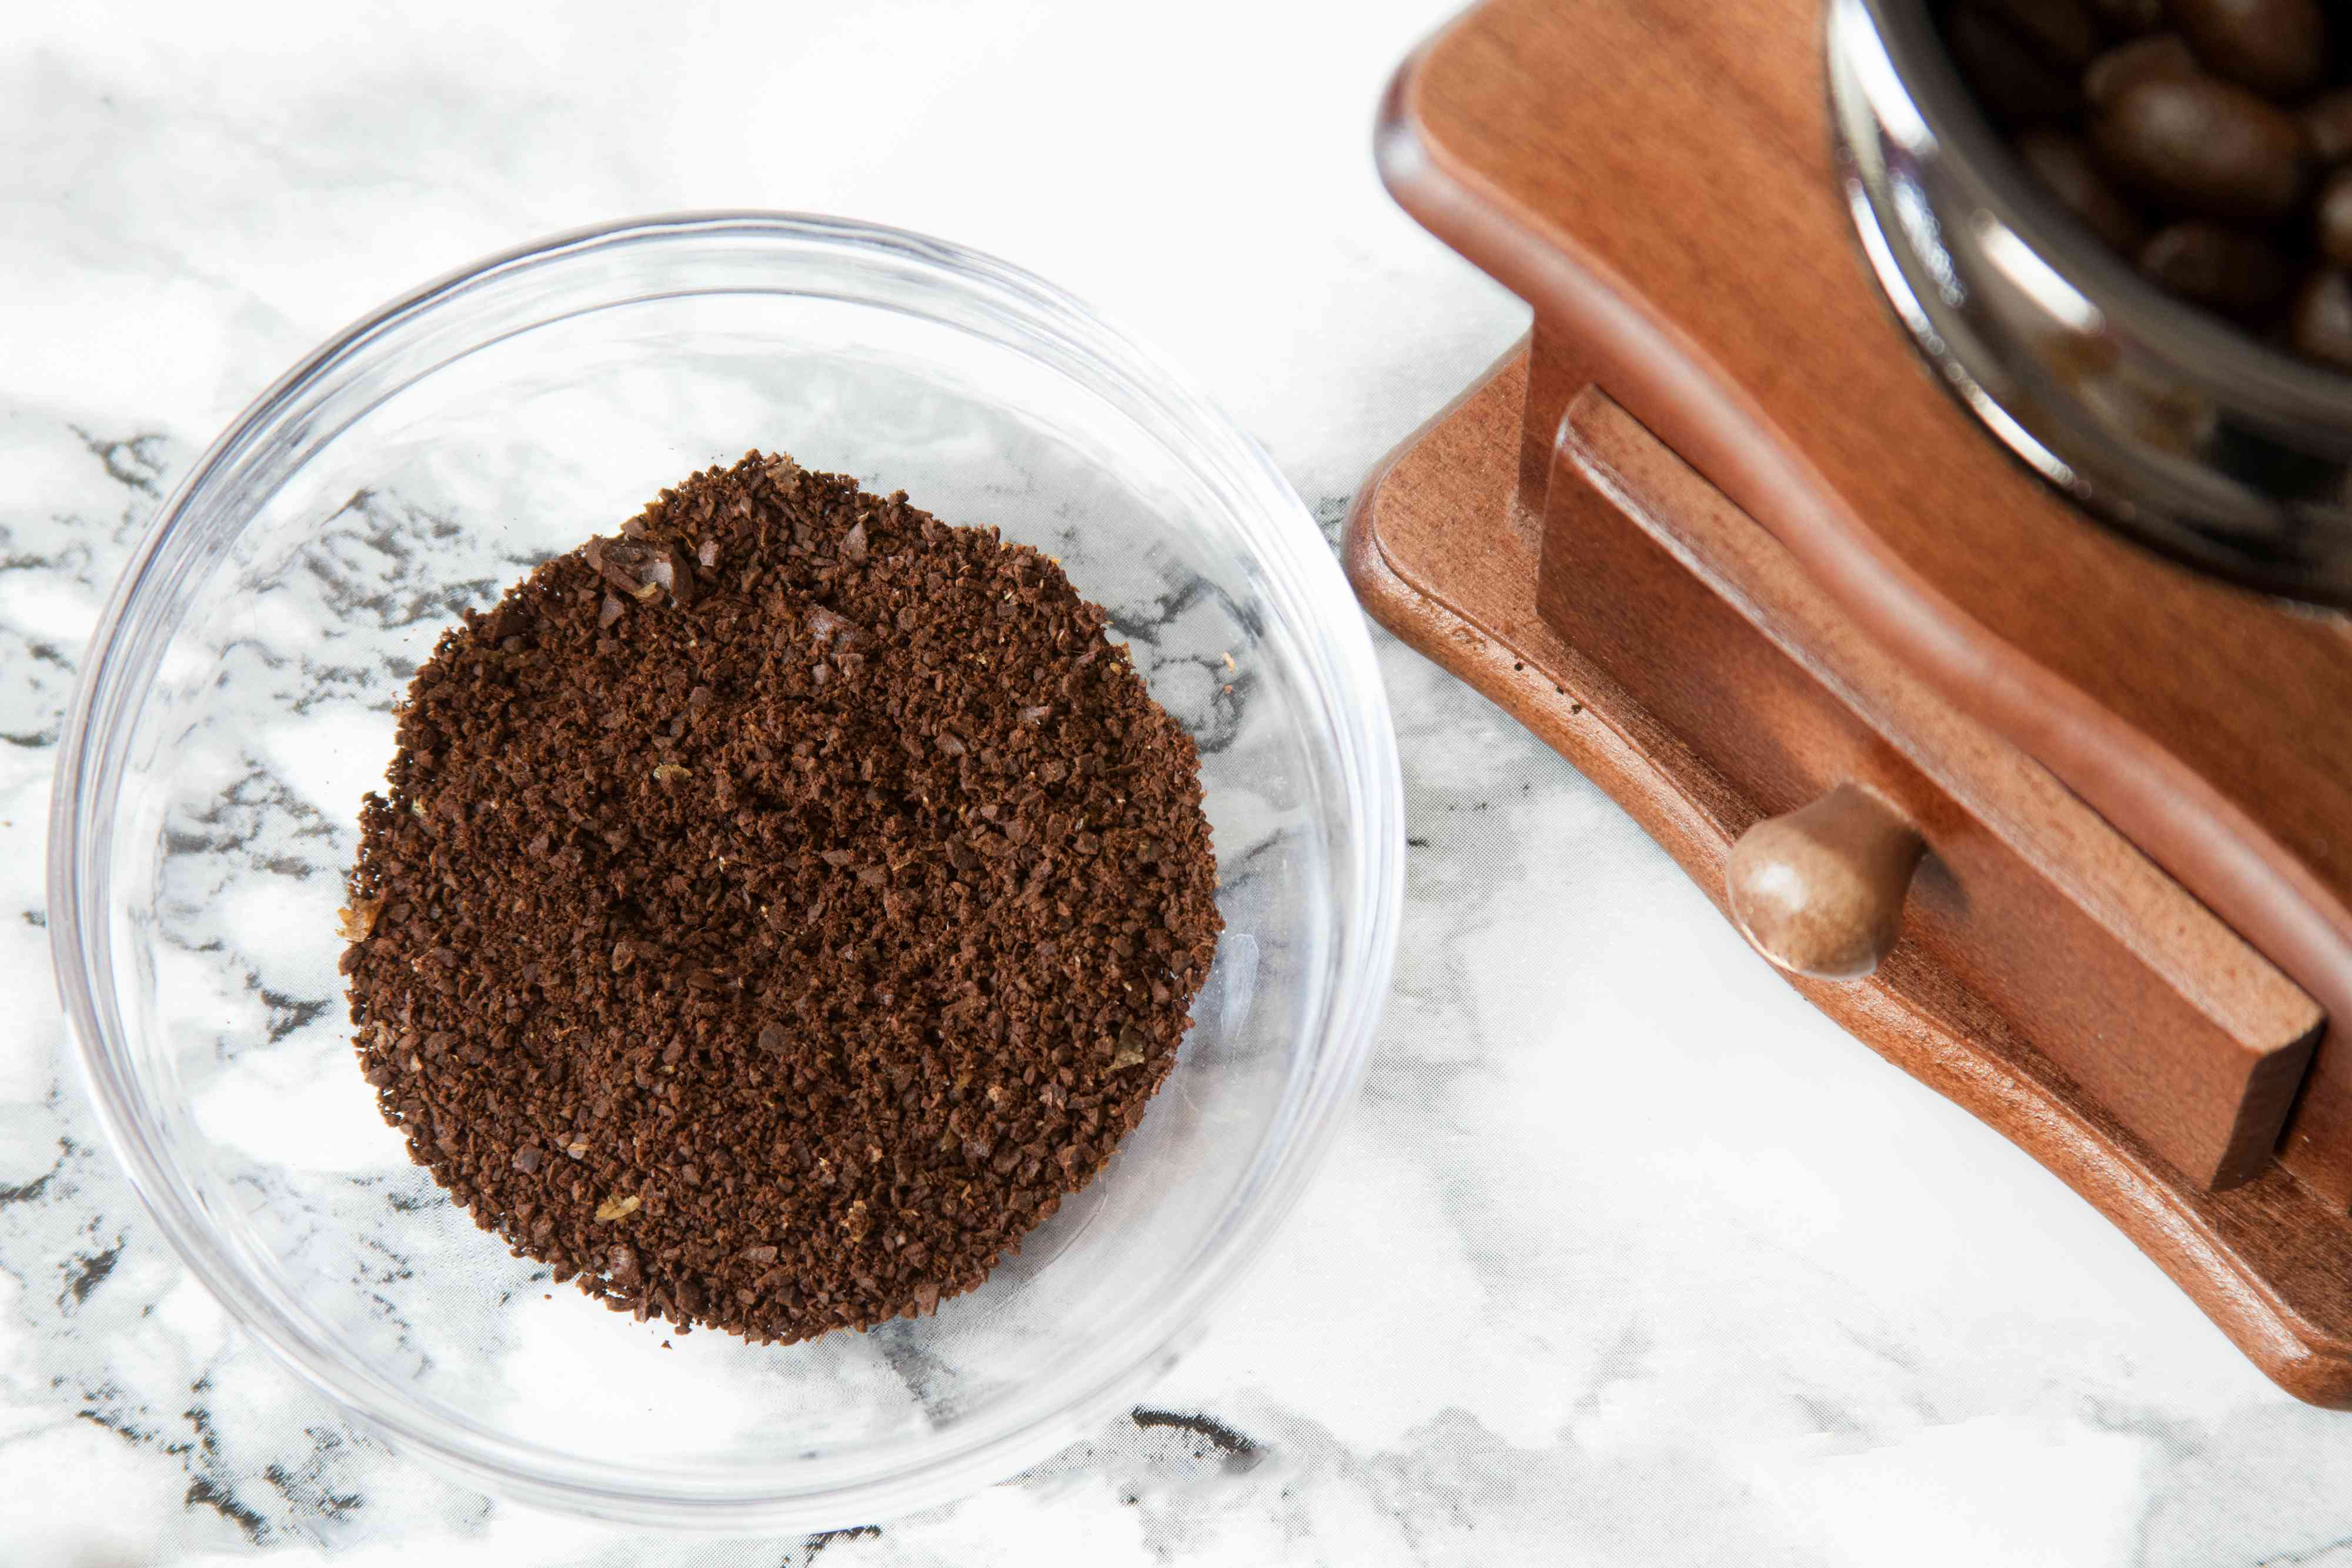 Medium-Fine Ground Coffee for Pour-Over Brewing